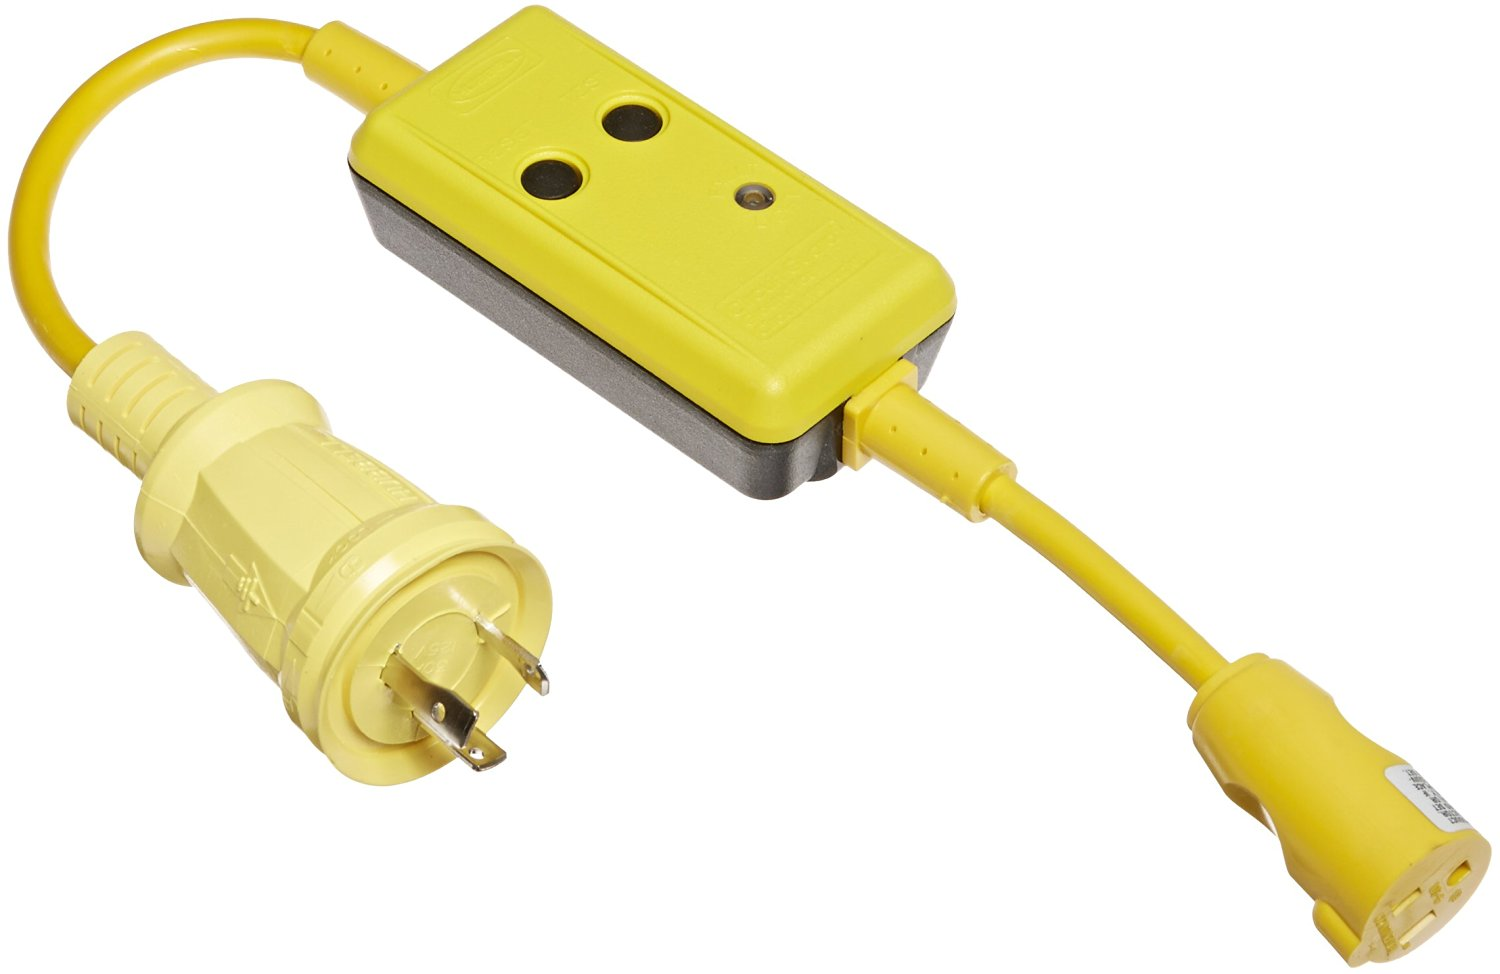 Buy Hubbell Wiring Device Kellems Hbl21cm28 Plug Adapter15a125v In A End Systems Hbl105gf Molded Straight Adapter 15a 125v 2p 3w Female With 30a Twist Lock Male Yellow